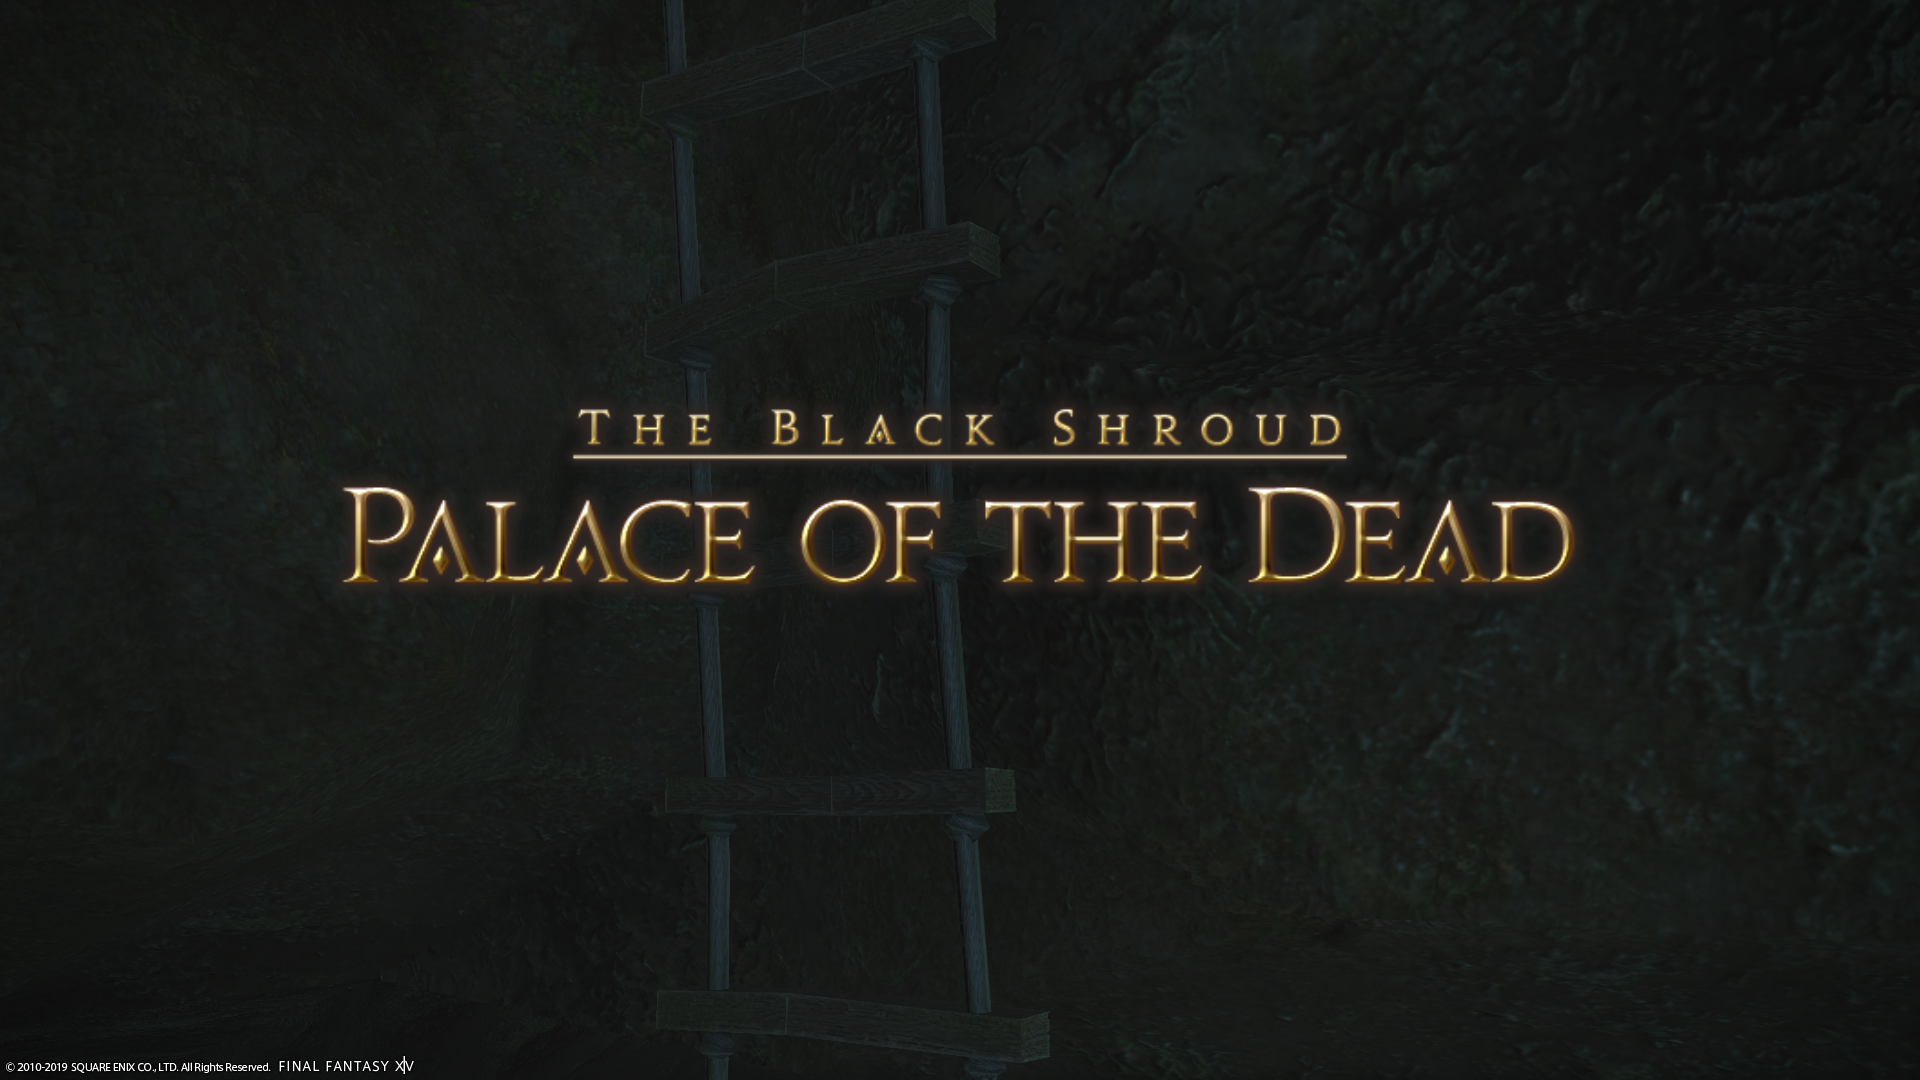 Palace of the Dead